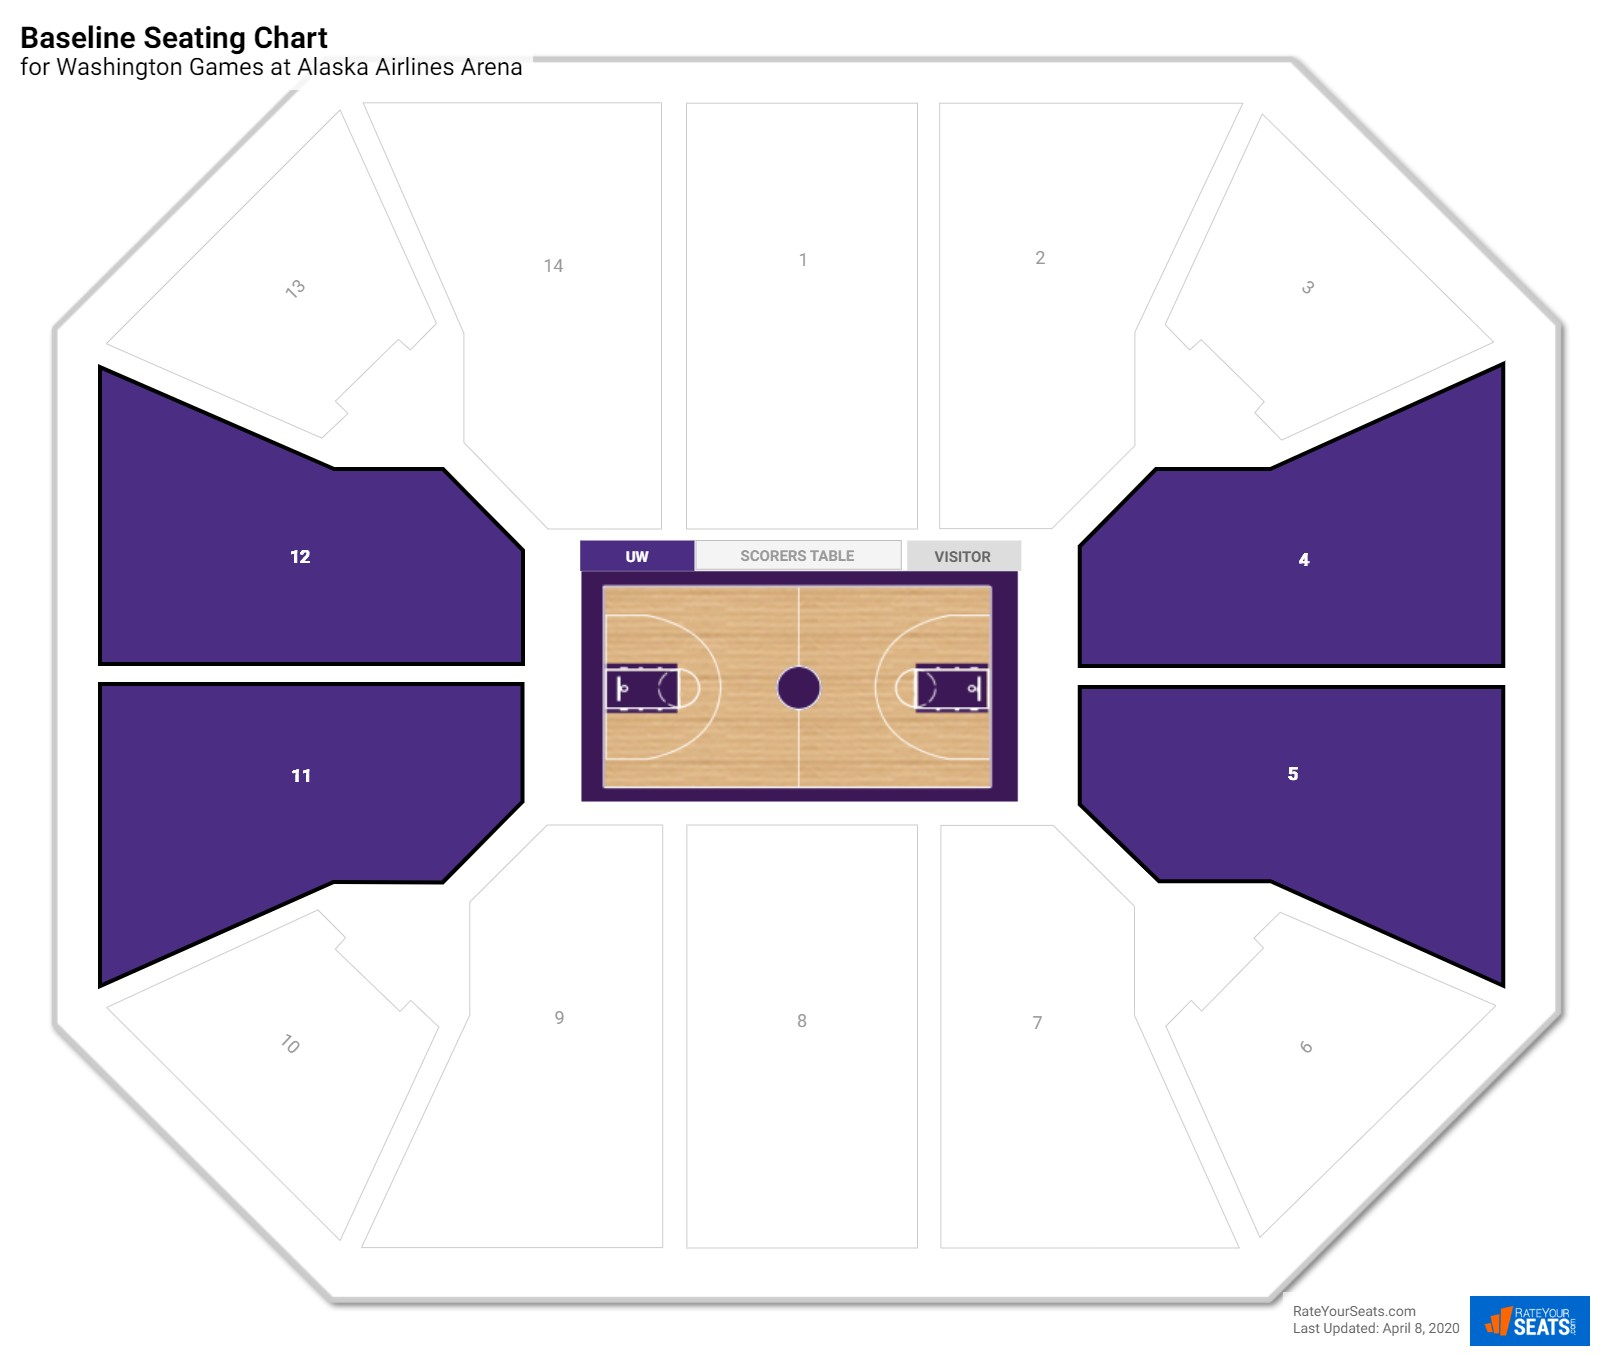 Alaska Airlines Arena Baseline seating chart